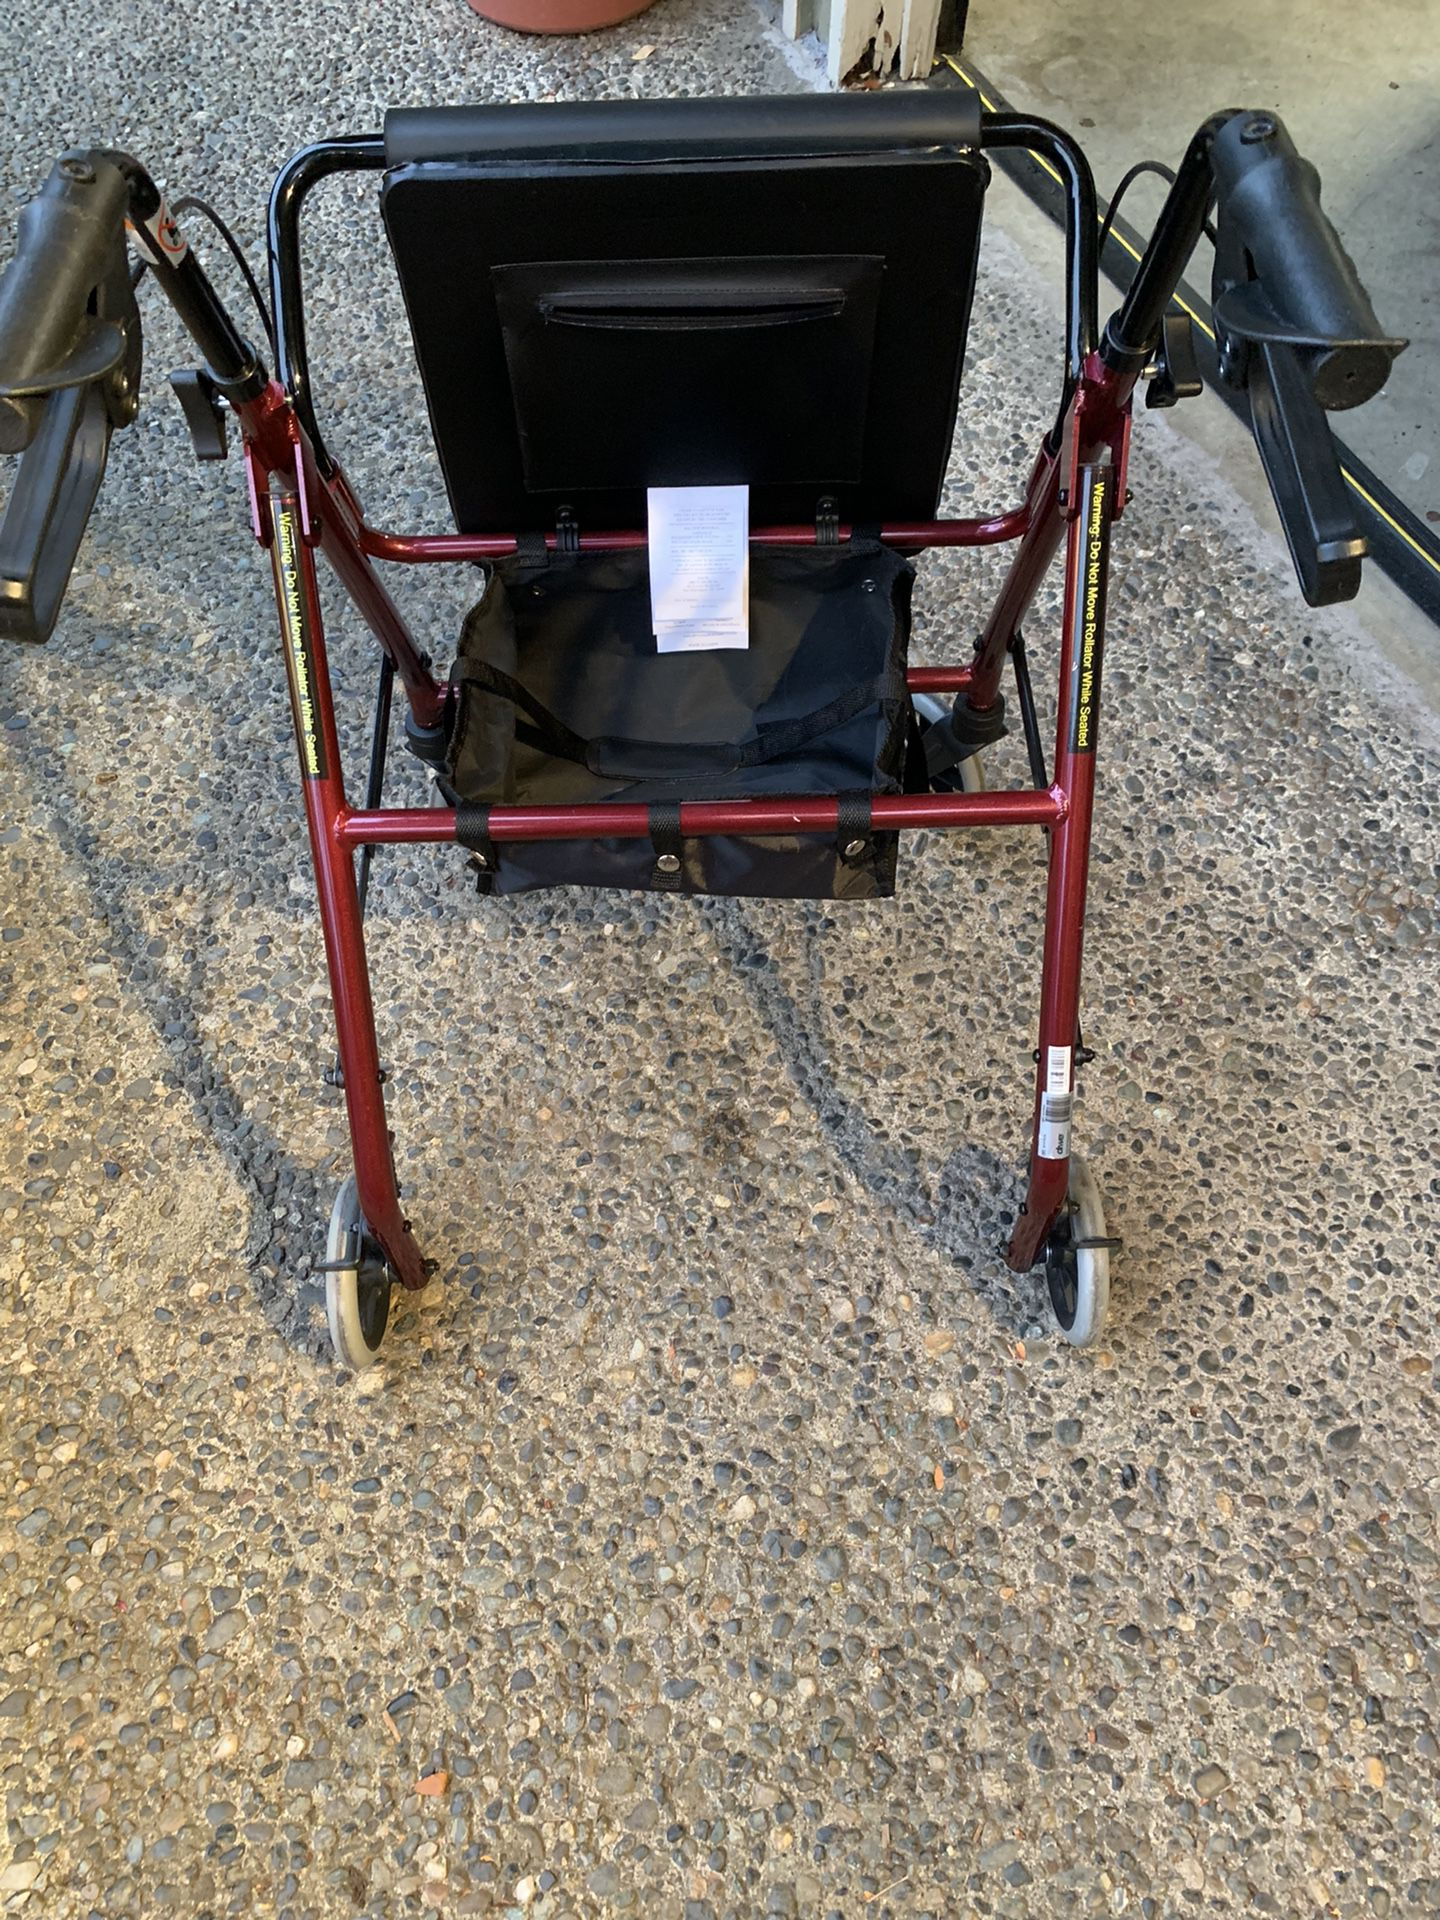 DRIVE Walker  With Brakes,  Seat, Storage  Can Fold For Easy Storage  Almost New   $100